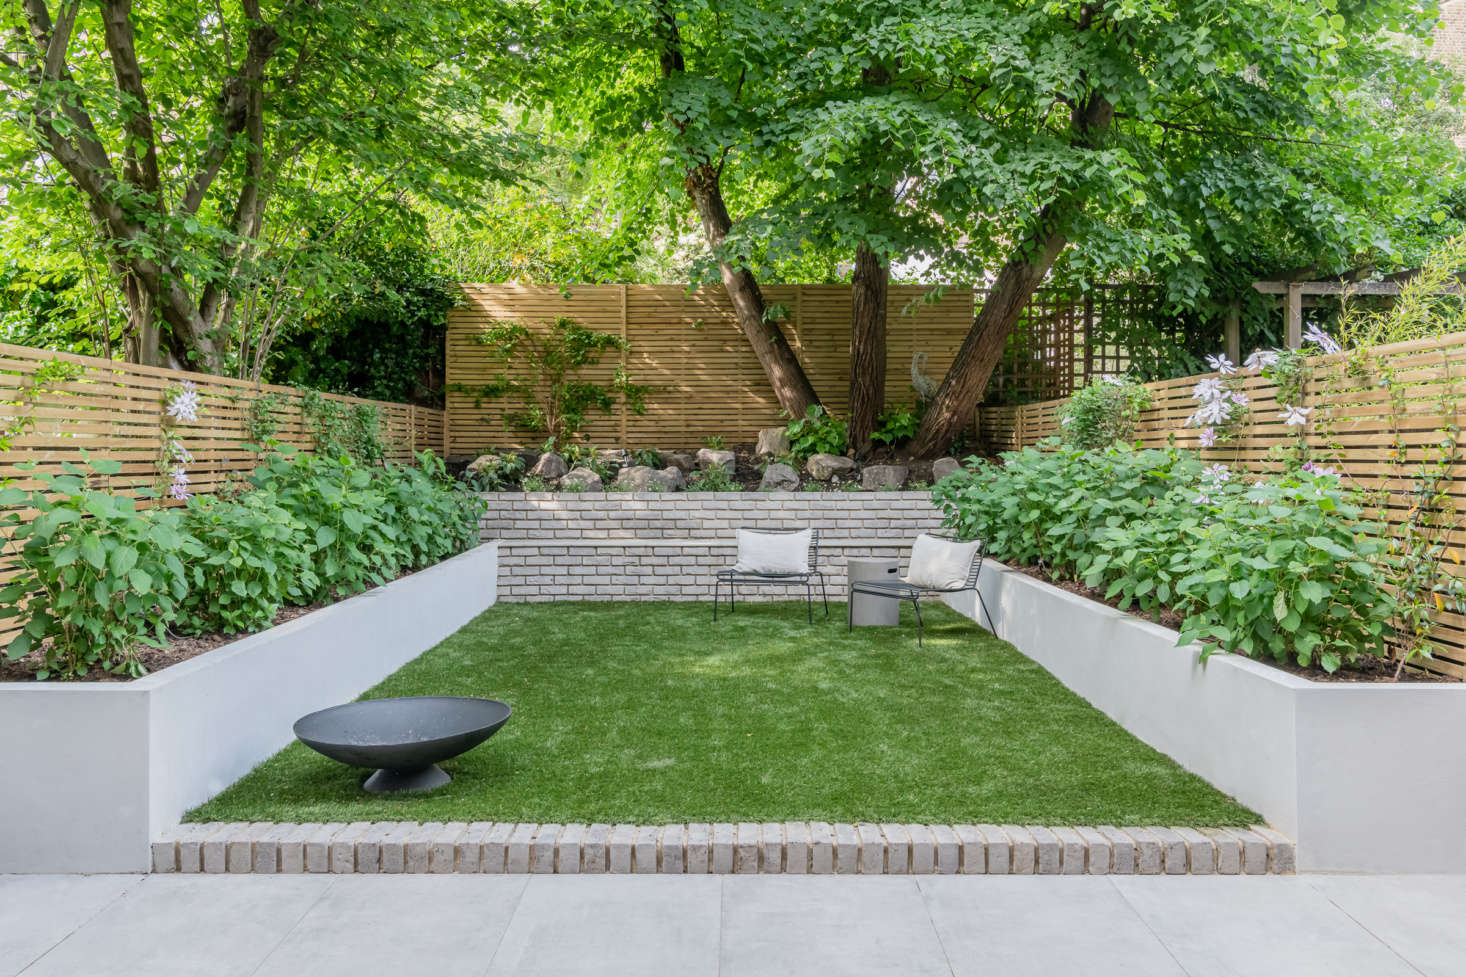 """Large ceramic tiles from Solus Ceramics make up the patio. (""""These are far cheaper than concrete and won't chip as easily,"""" notes Olivia.) The privacy fencing is fabricated from Iroko wood. As for the grass, it's artificial. """"It is the best thing for maintenance when you all have busy careers,"""" she explains."""